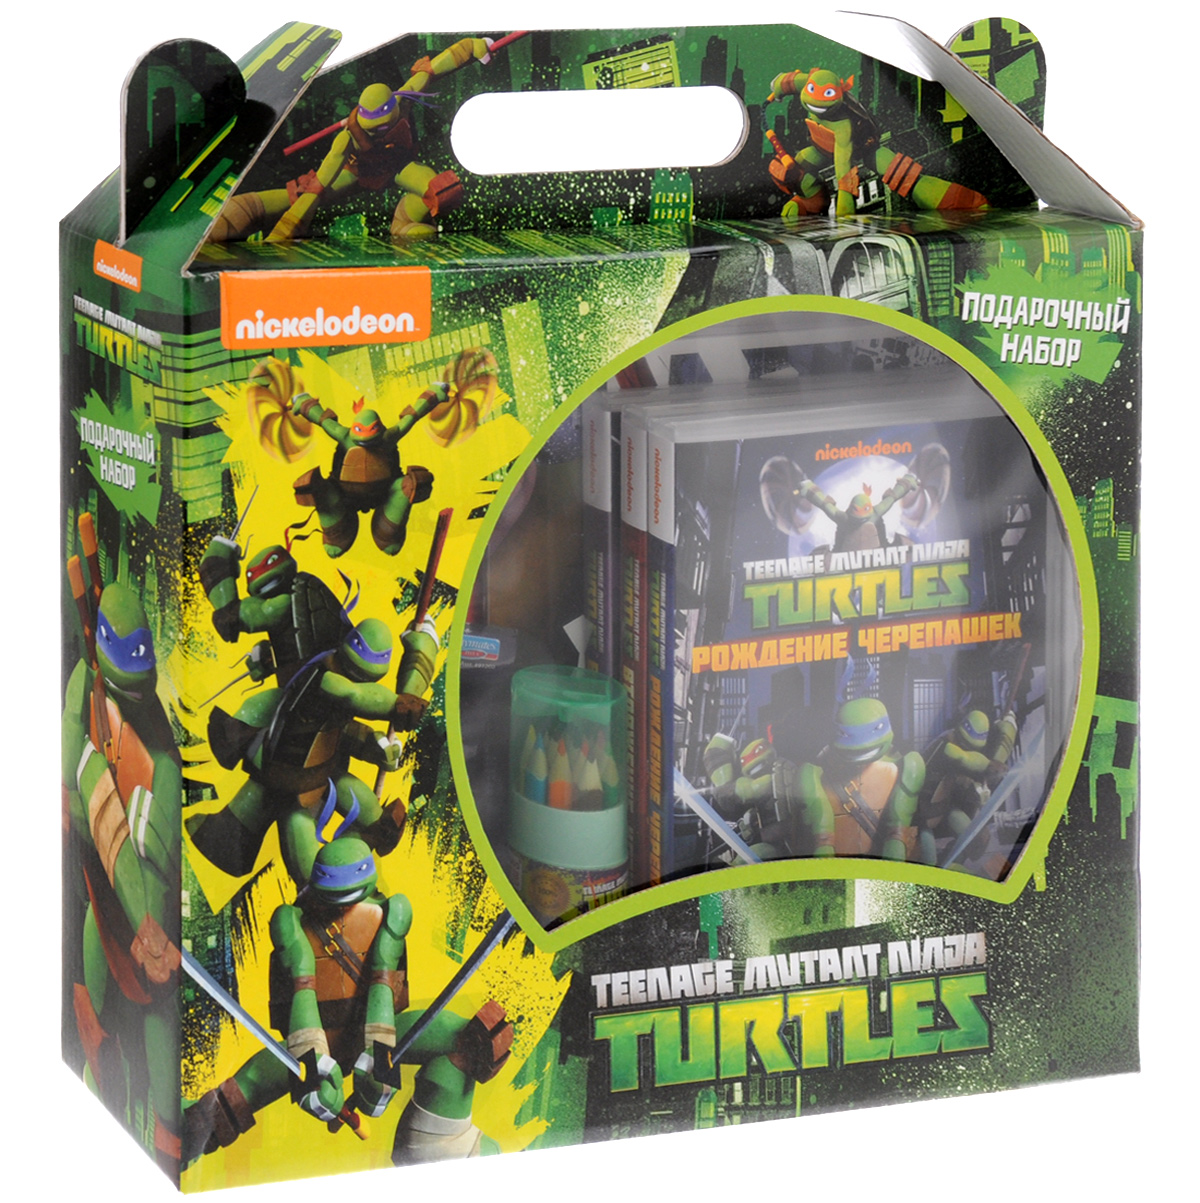 Teenage Mutant Ninja Turtles: Подарочный набор (3 DVD + сувениры) рюкзак sprayground teenage mutant ninja grillz backpack b190b leonardo blue